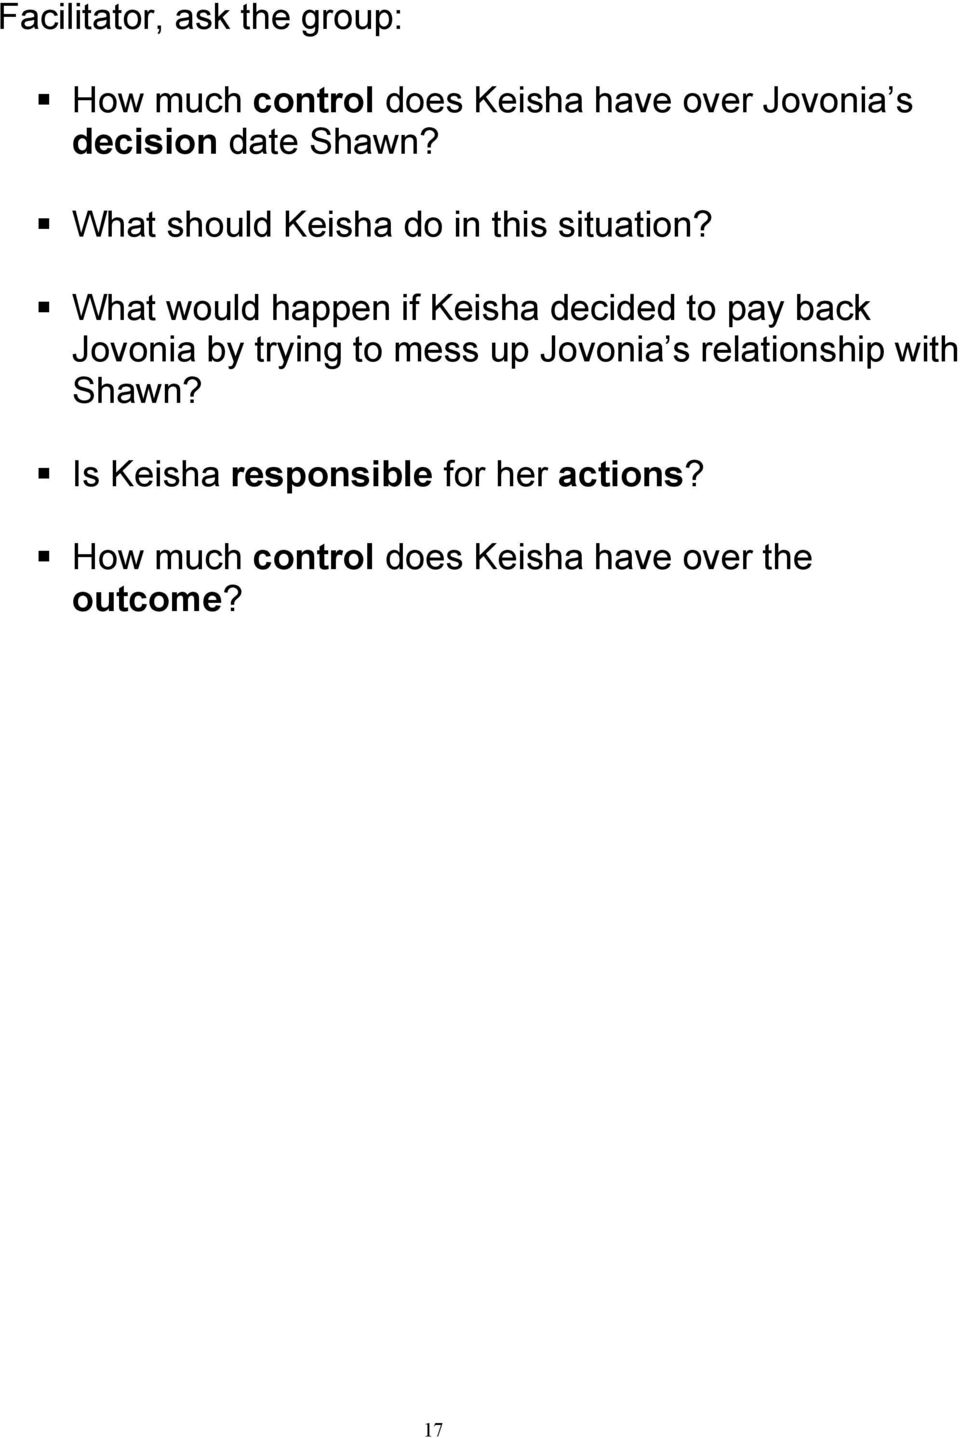 What would happen if Keisha decided to pay back Jovonia by trying to mess up Jovonia